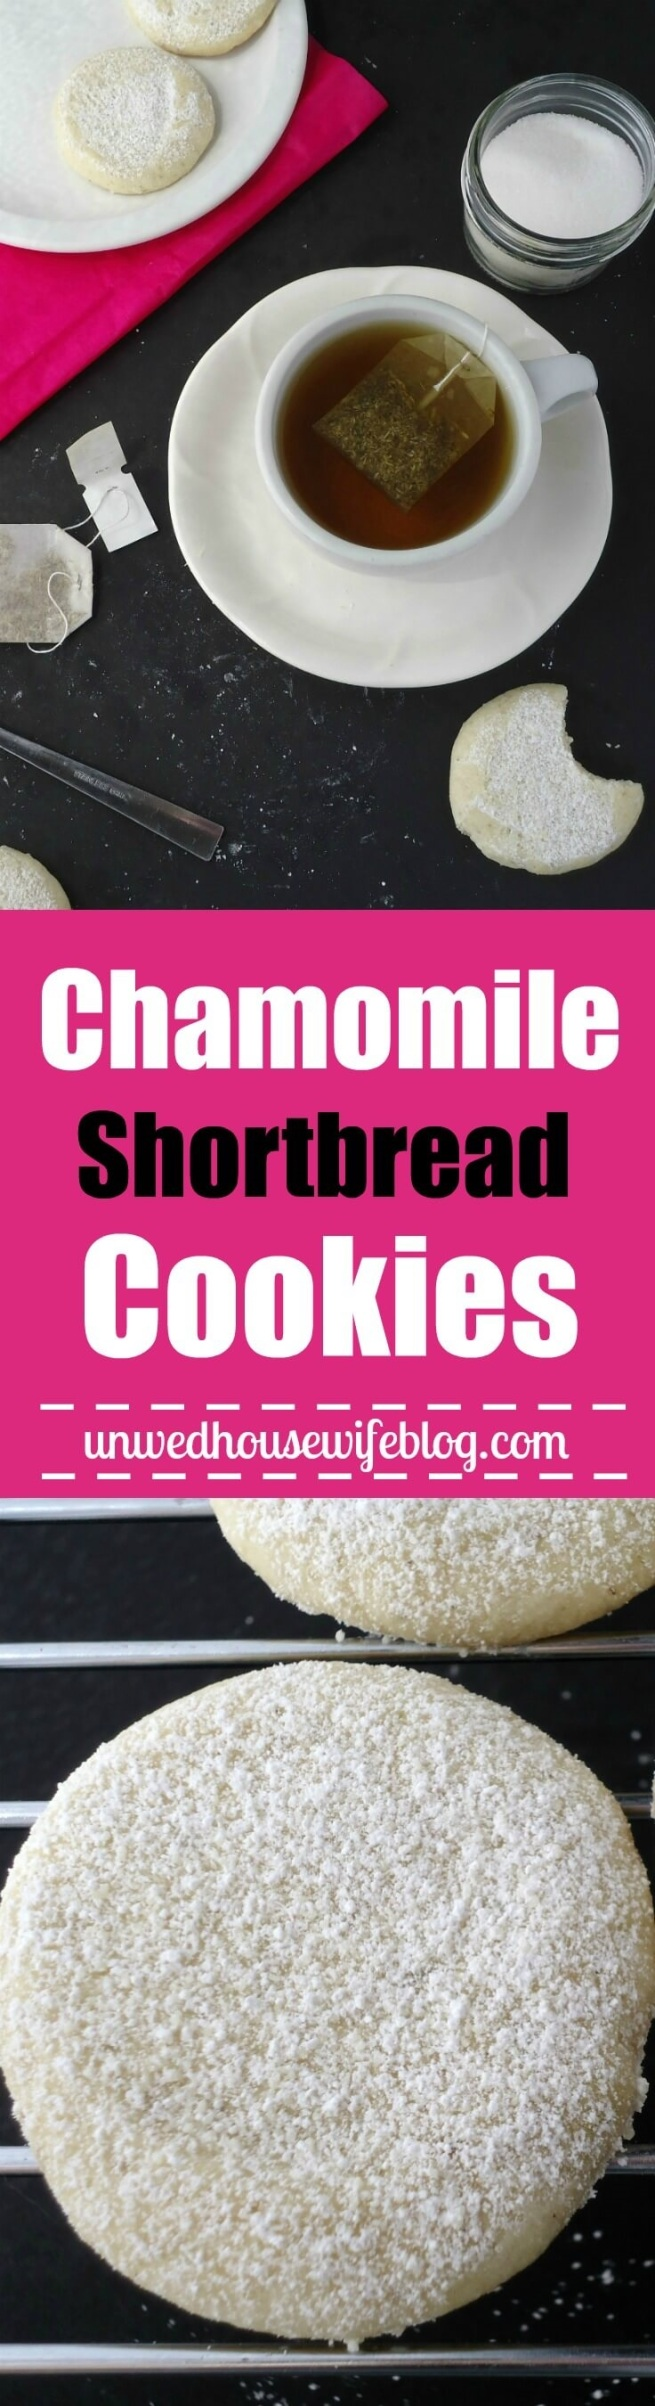 Chamomile Shortbread Cookies | Unwed Housewife | Elegant, sophisticated shortbread cookies infused with chamomile tea leaves. These soothing, calming cookies are perfect for teatime. A simple and easy, 5-ingredient cookie recipe.